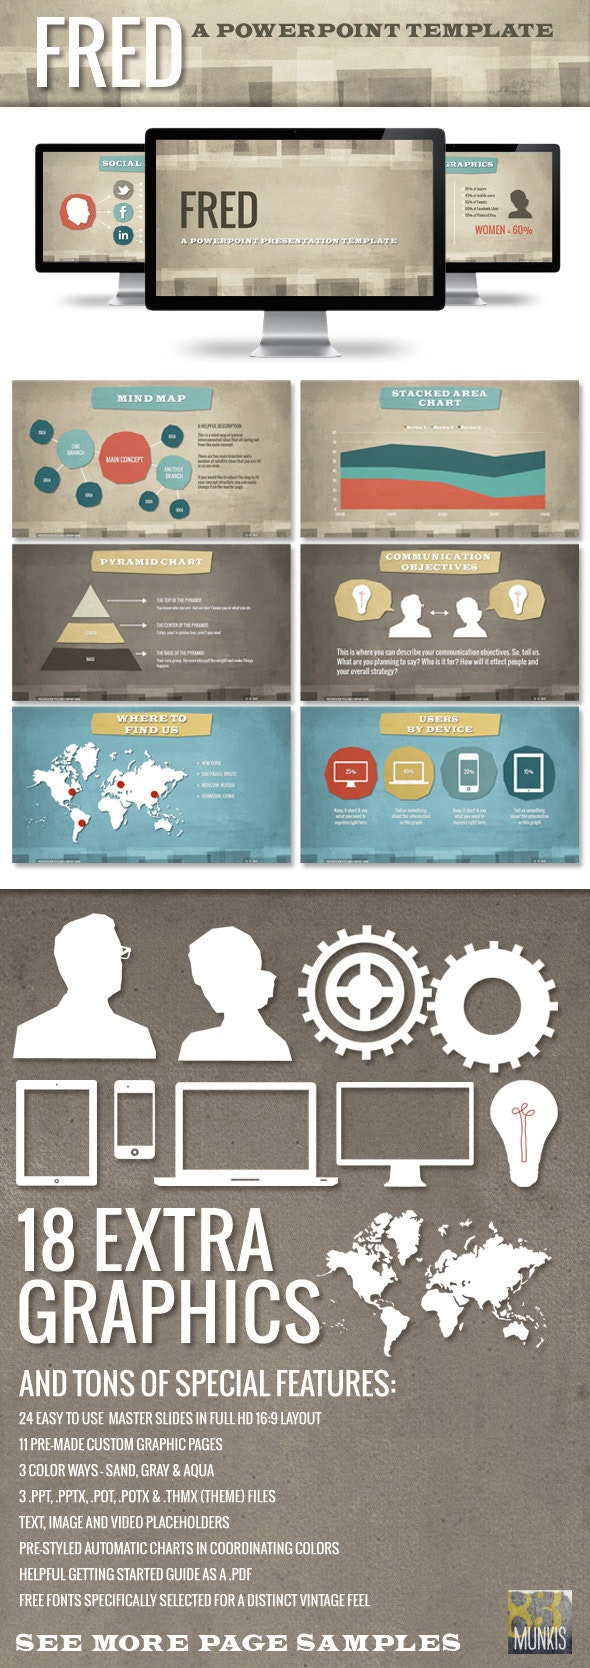 FRED Professional Powerpoint Presentation Template - PowerPoint Templates Presentation Templates